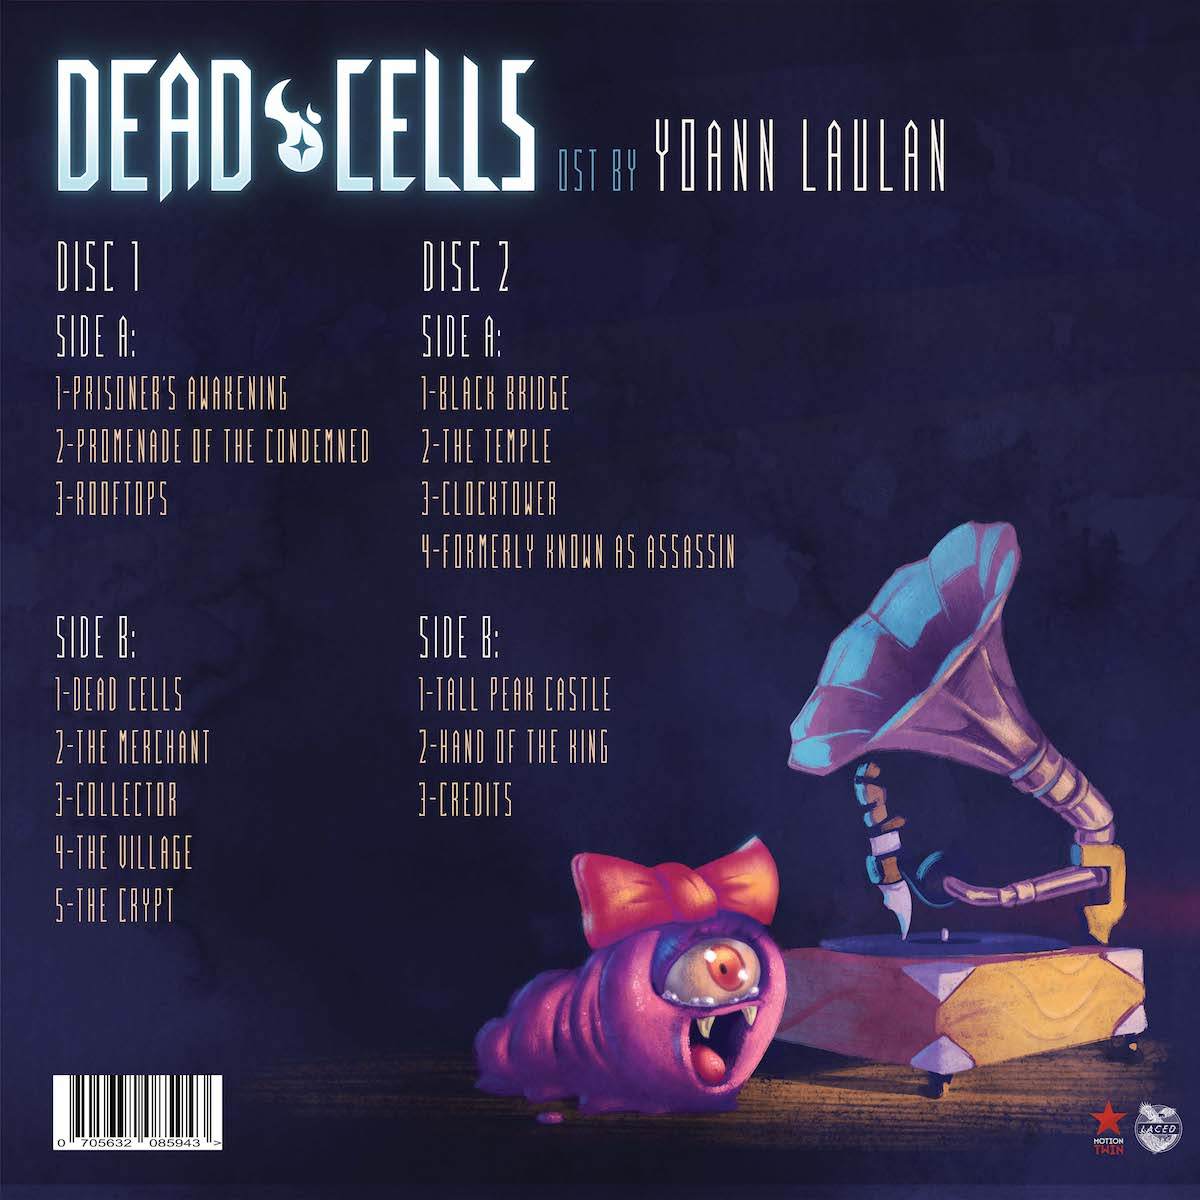 The back cover of the Dead Cells OST vinyl